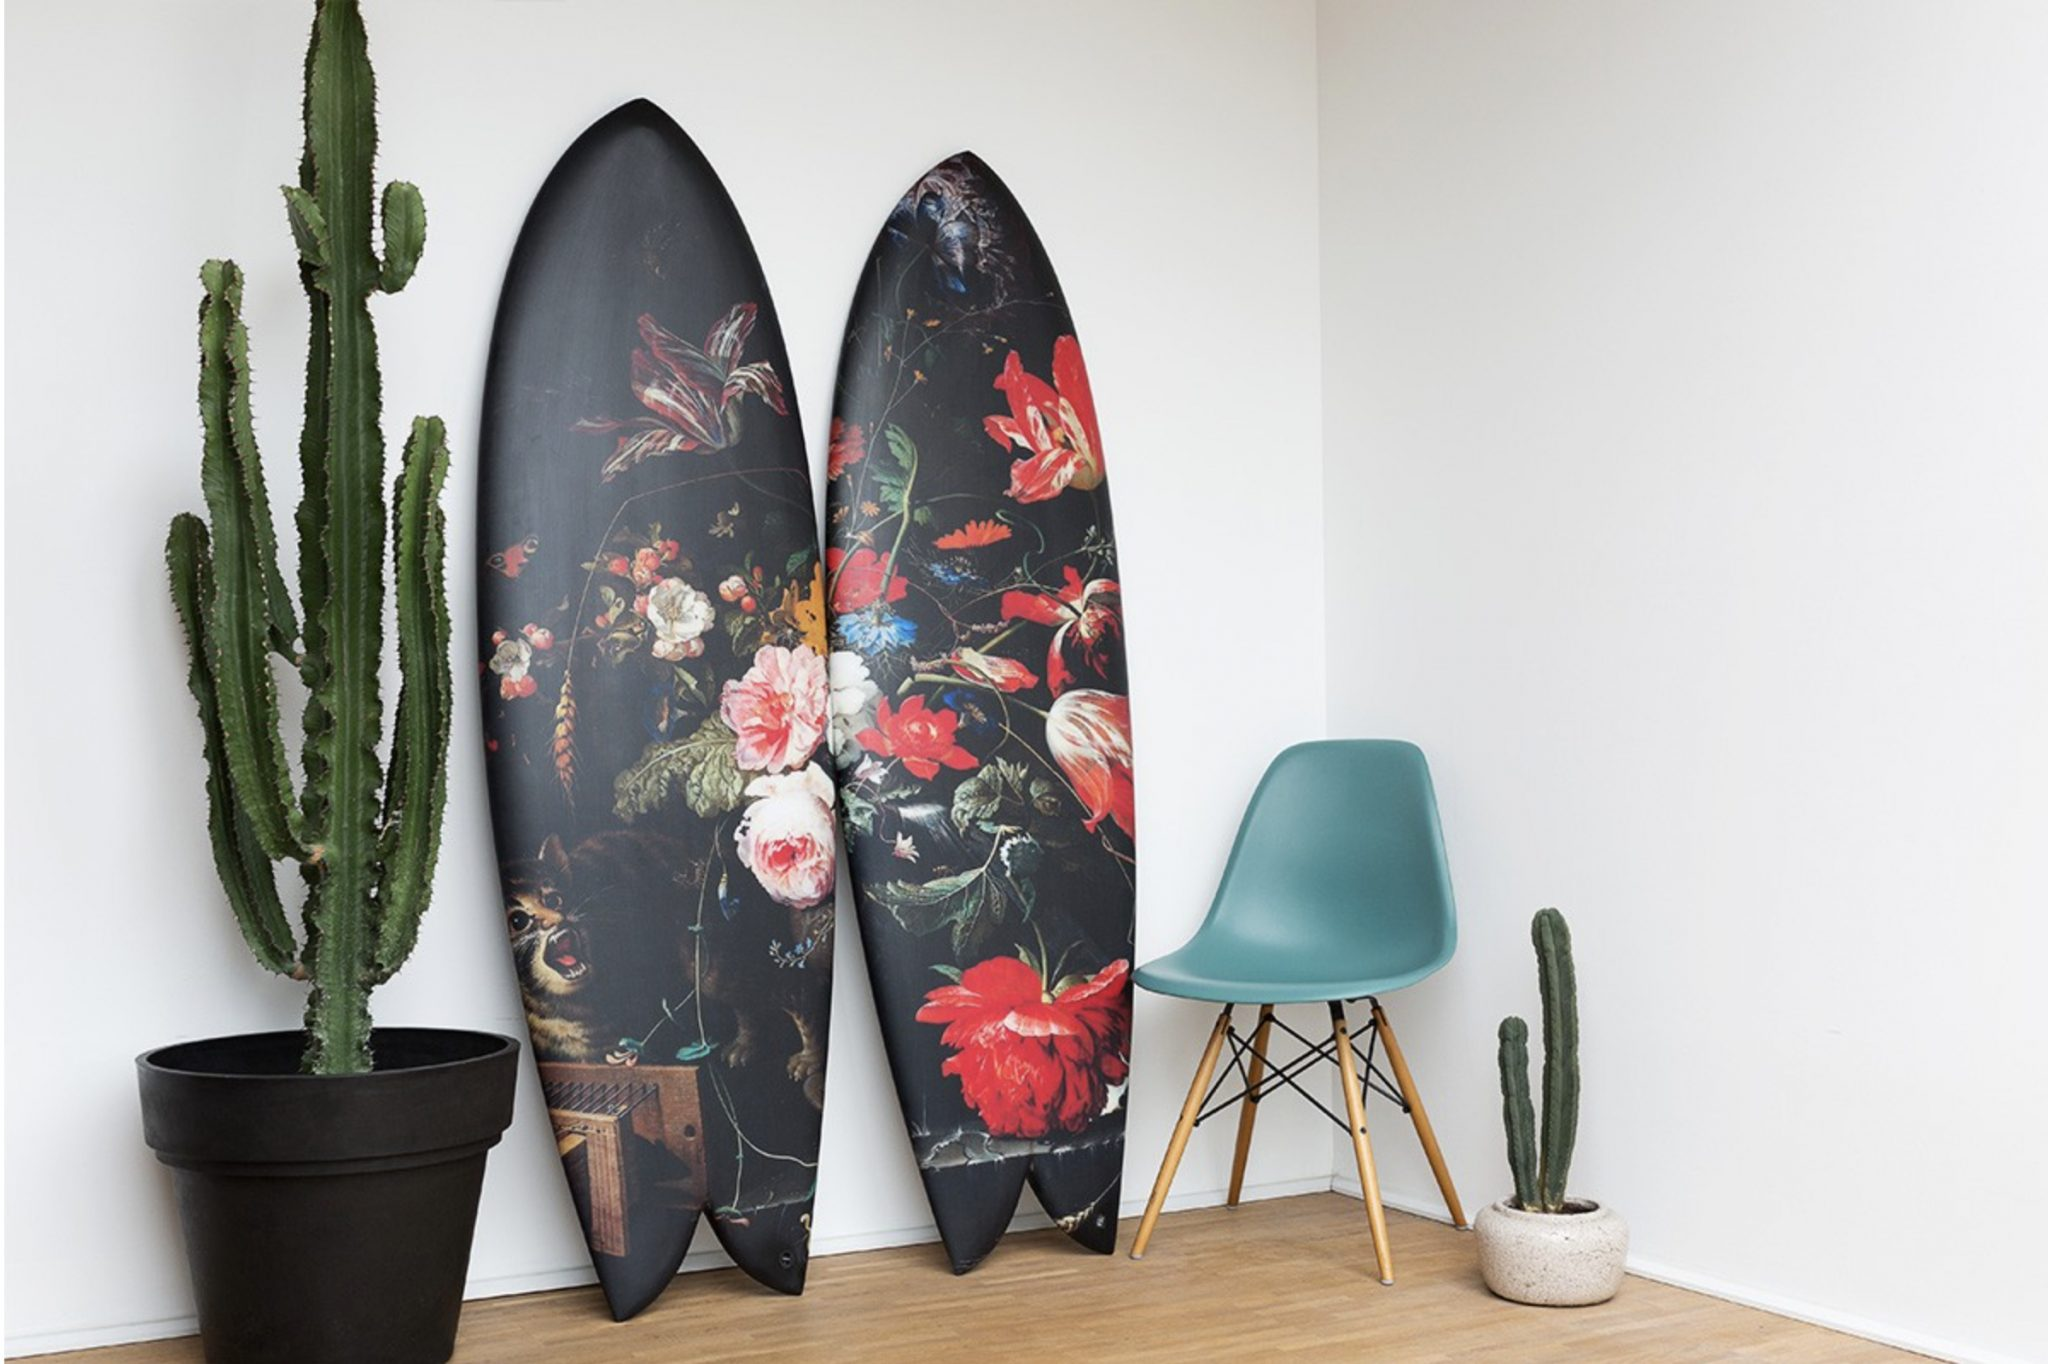 Highsnobiety Surfboard art